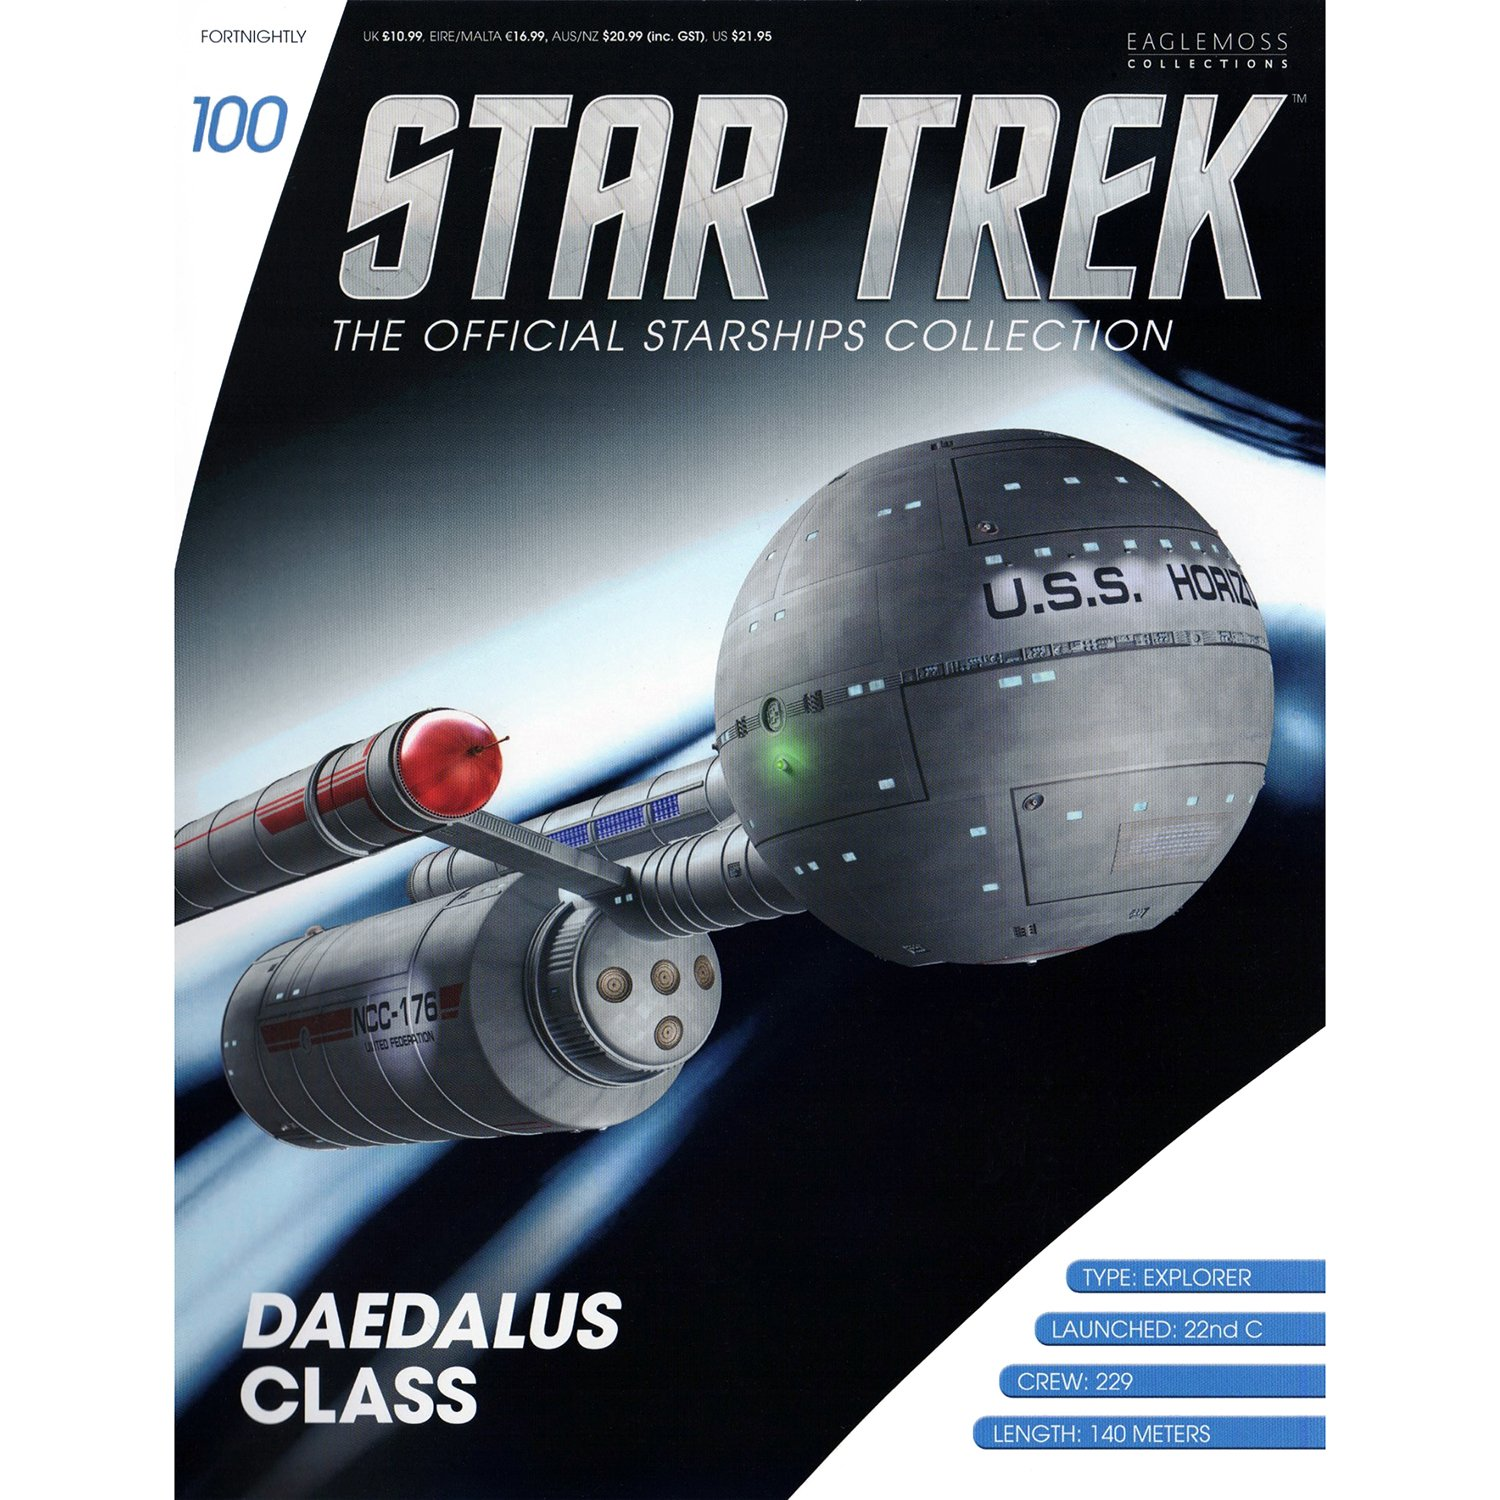 Star Trek Daedalus Class (USS Horizon) Model with Magazine #100 by Eaglemoss